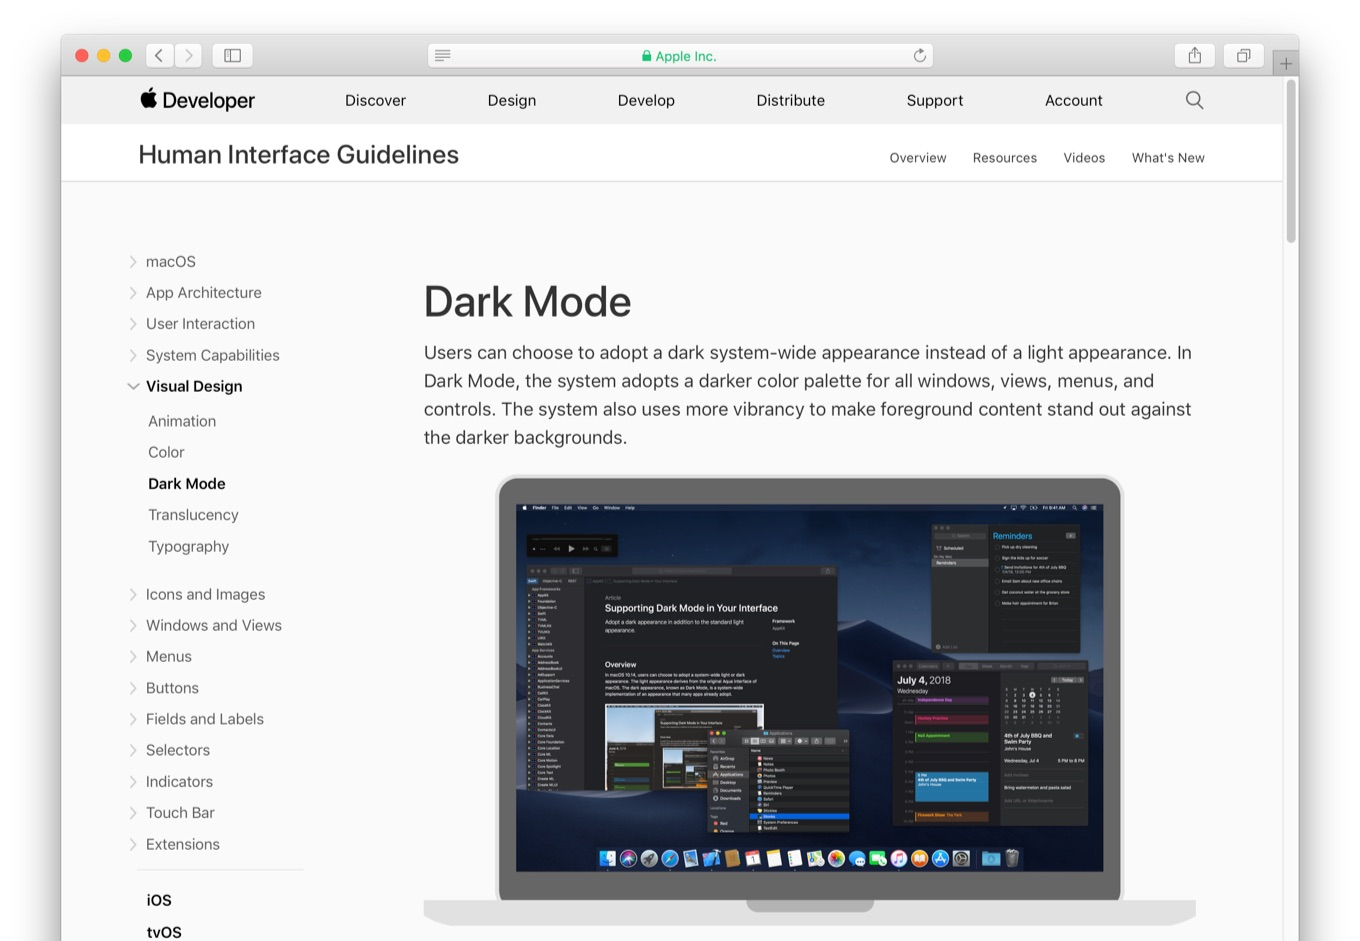 Apple Human Interface Guidelines and Dark Mode